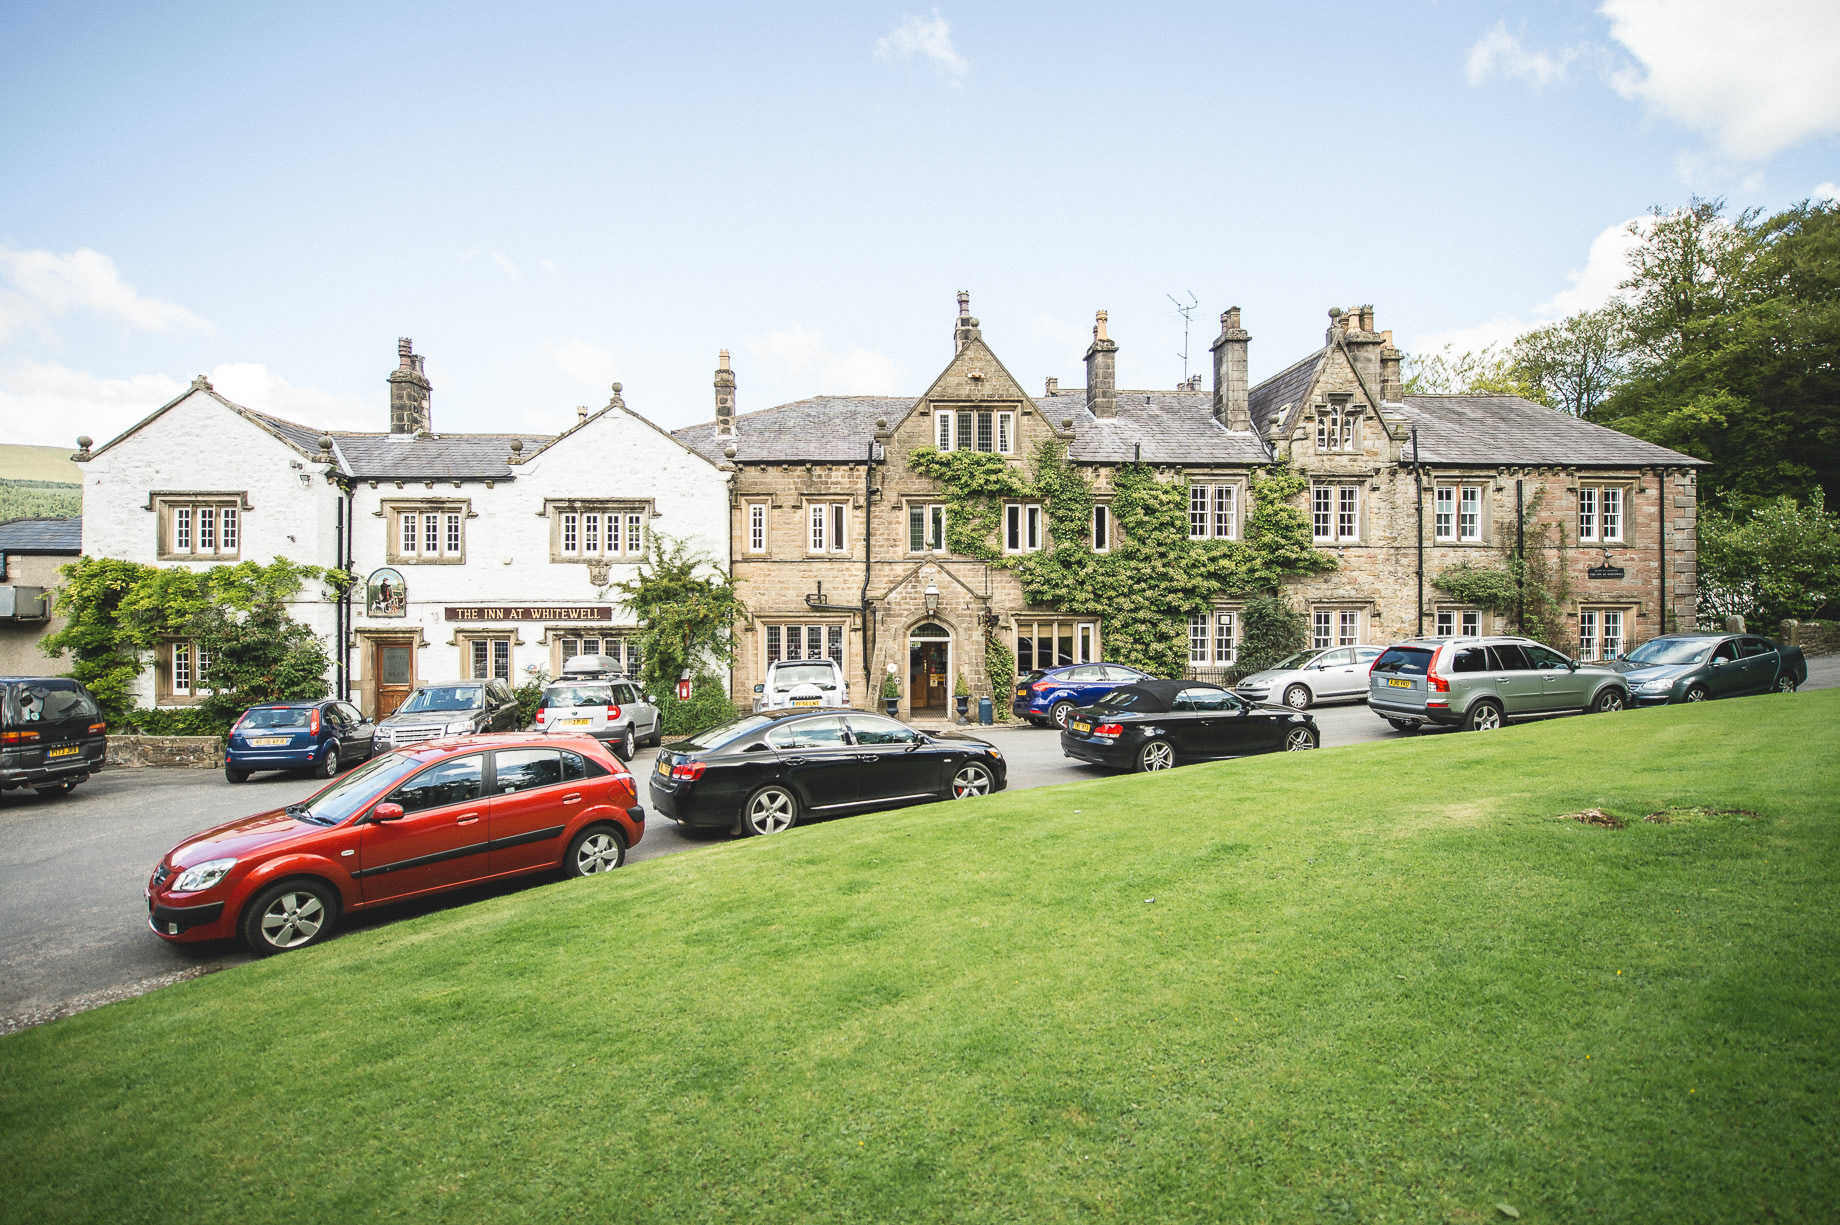 Tess and Paul's Wedding at The Inn at Whitewell 005